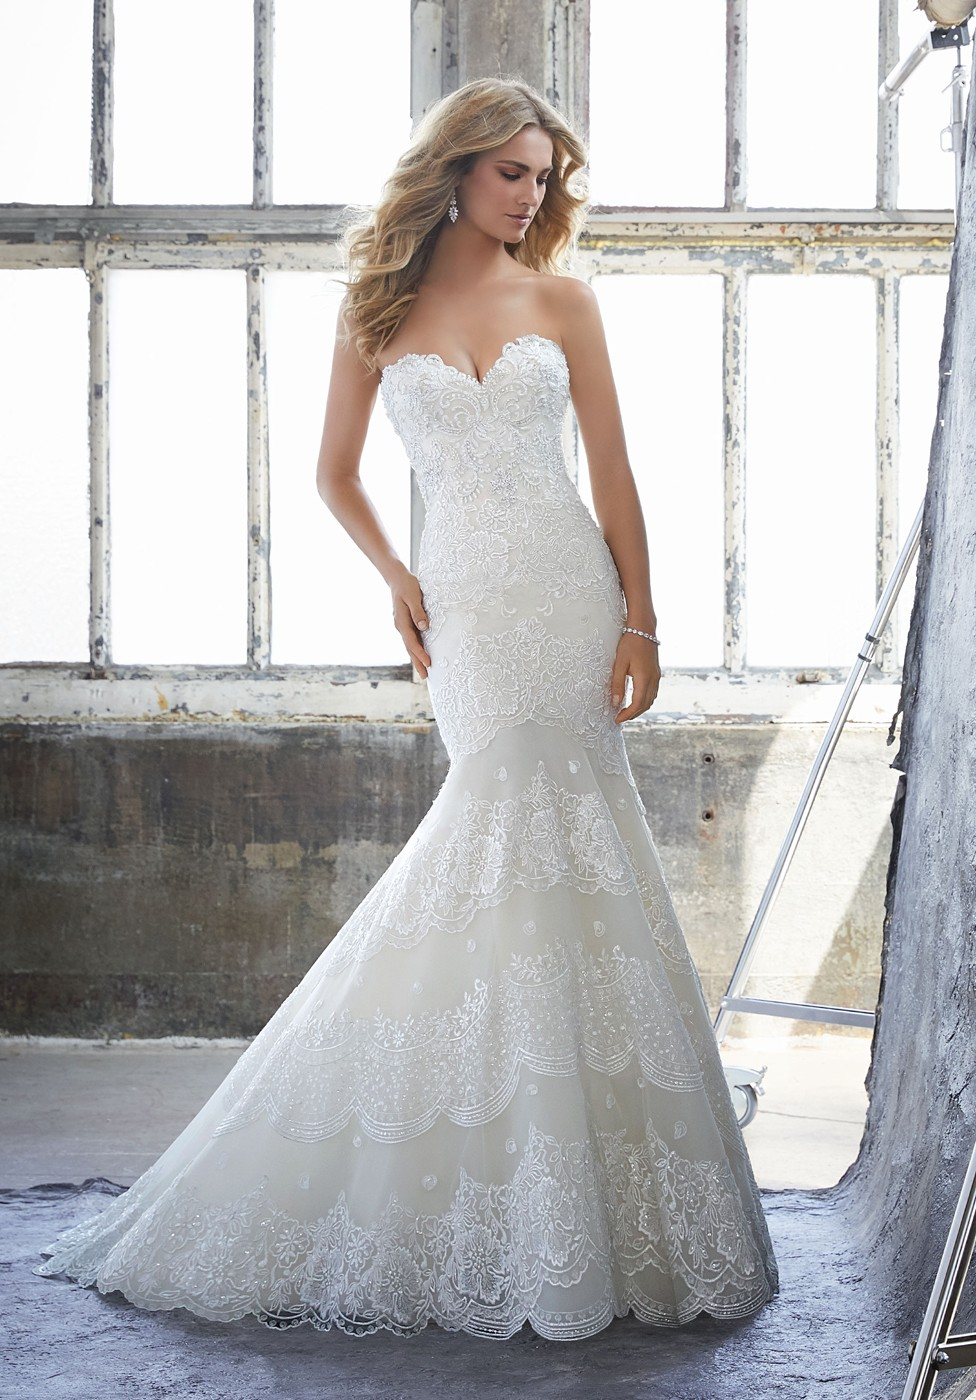 Mori Lee Khloe Style 8216 Dress - MadameBridal.com